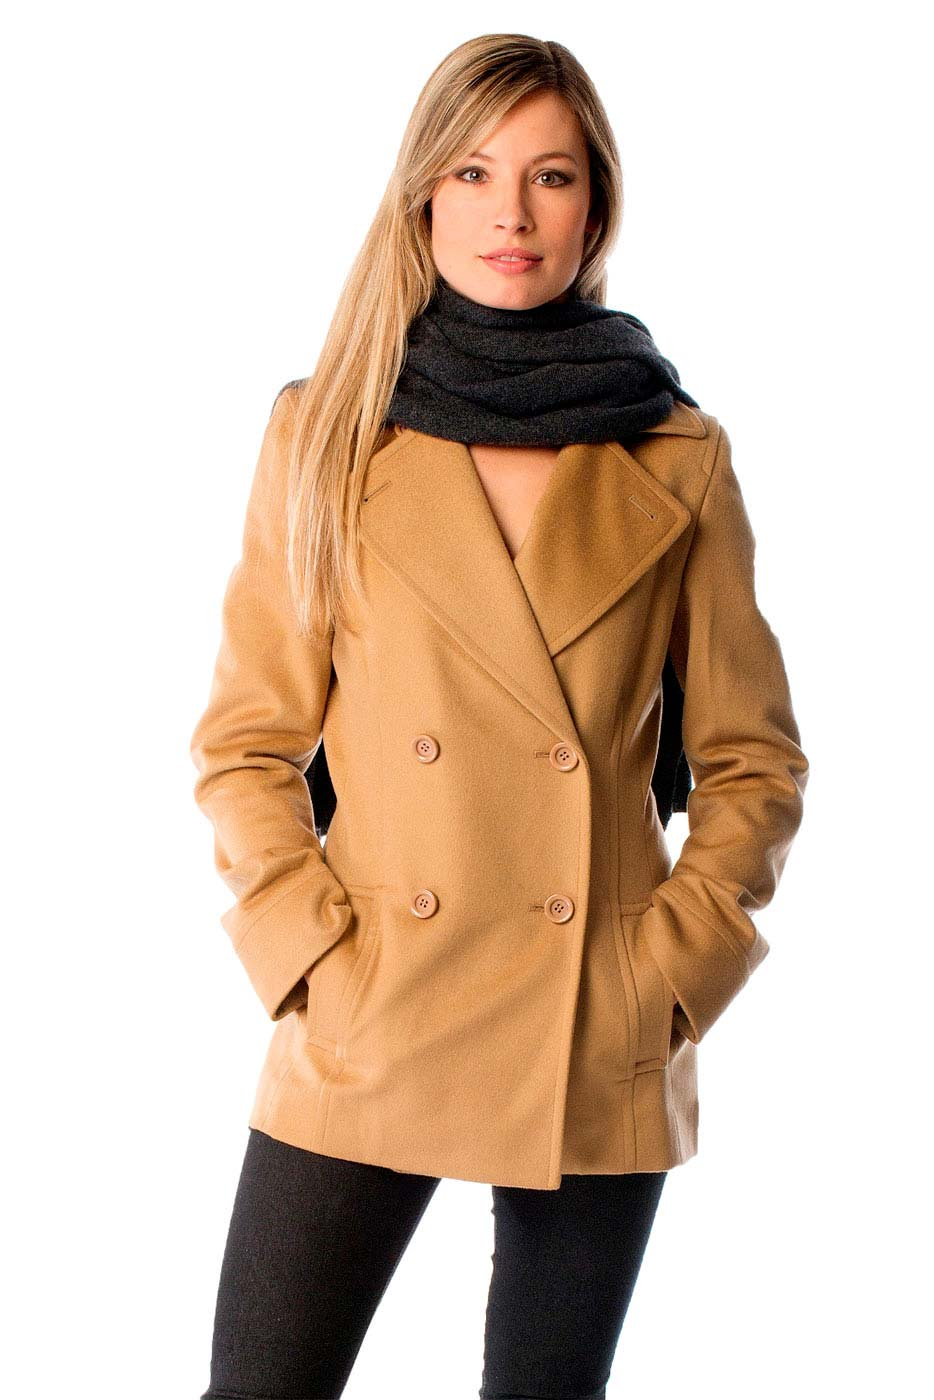 Luxurious soft and really warm this fitted cashmere coat is made from the finest grades of cashmere and wool. These coats offer unsurpassed warmth and softness and include the following features- Light weight yet incredibly warmCashmere 30 Fine Wool 70Fabric weight - 450 gms/sq. mtrDouble Breasted in a fitted style front pocketsAvailable in Black & CrimsonAvailable in standard US sizes 4 to 14This pea coat can be worn in two ways- One with the flaps open as shown in the red coat inset and the other with the flaps buttoned up as shown in the Camel coat in the main picture. Measurements of this Pea CoatSize468101214Length2929.2529.529.753030.25Sleeve Length2525.2525.525.525.7526Shoulder16.2516.516.751717.517.75Corresponding Dress Size468101214